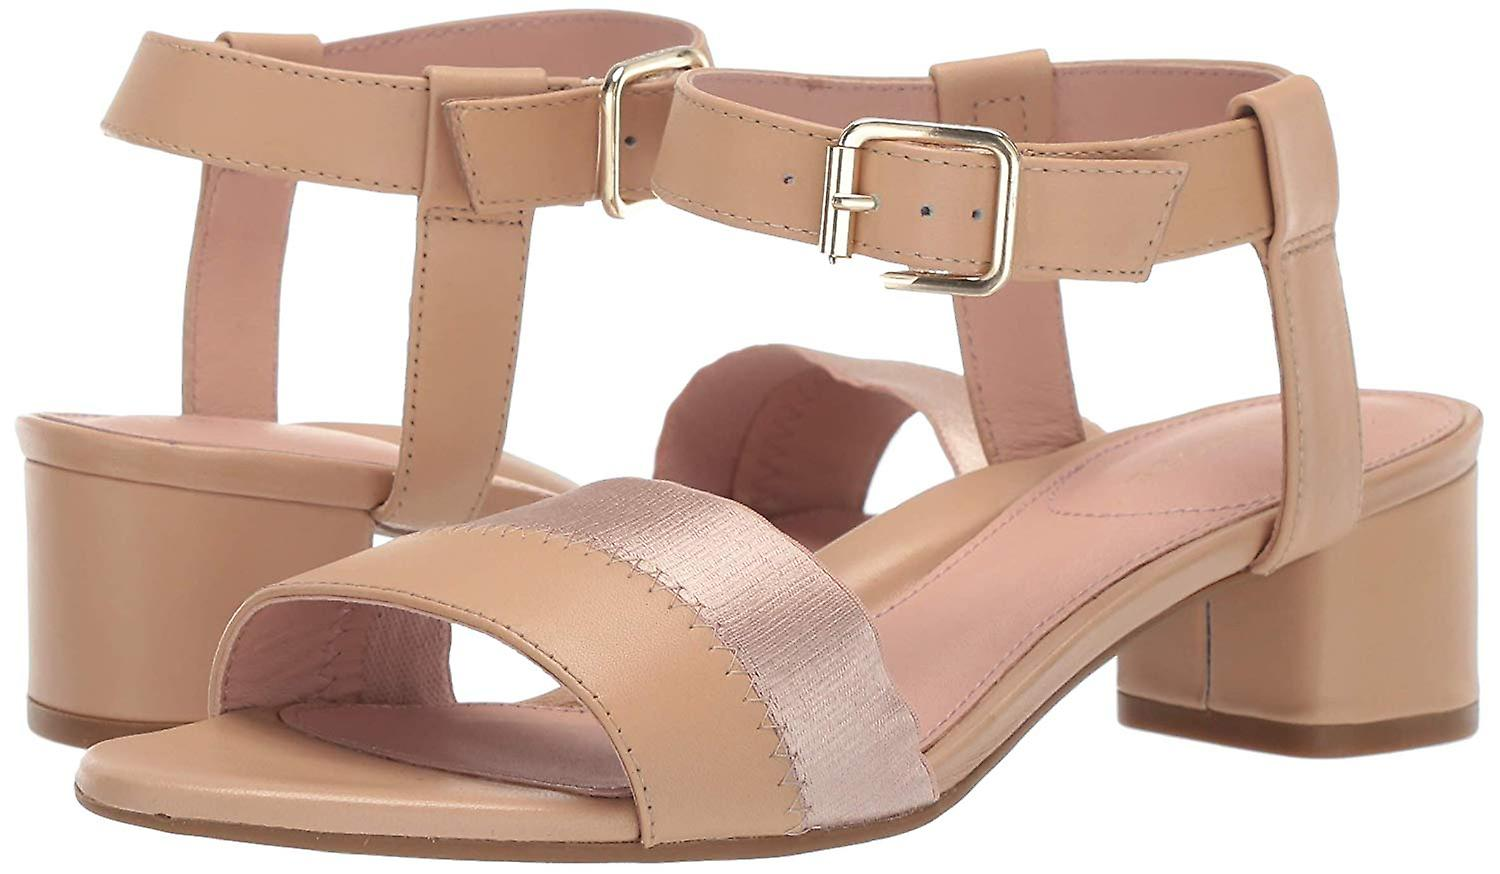 Taryn Rose Womens Makena Leather Open Toe Special Occasion Slingback Sandals S6jgB